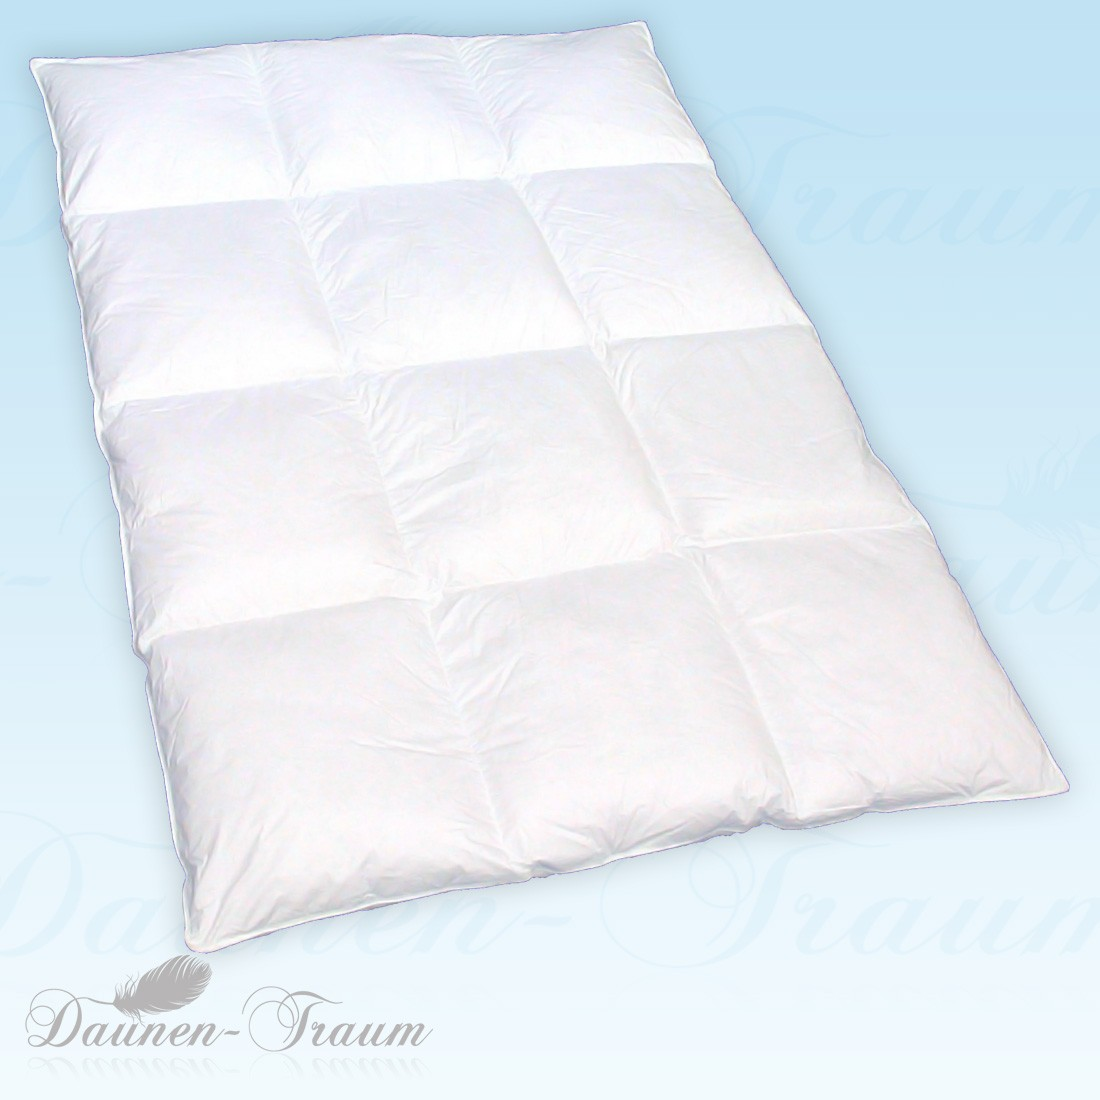 Daunendecke 135x200 4 Daunendecke 135x200 Affordable Revital Winter Daunendecke Extra